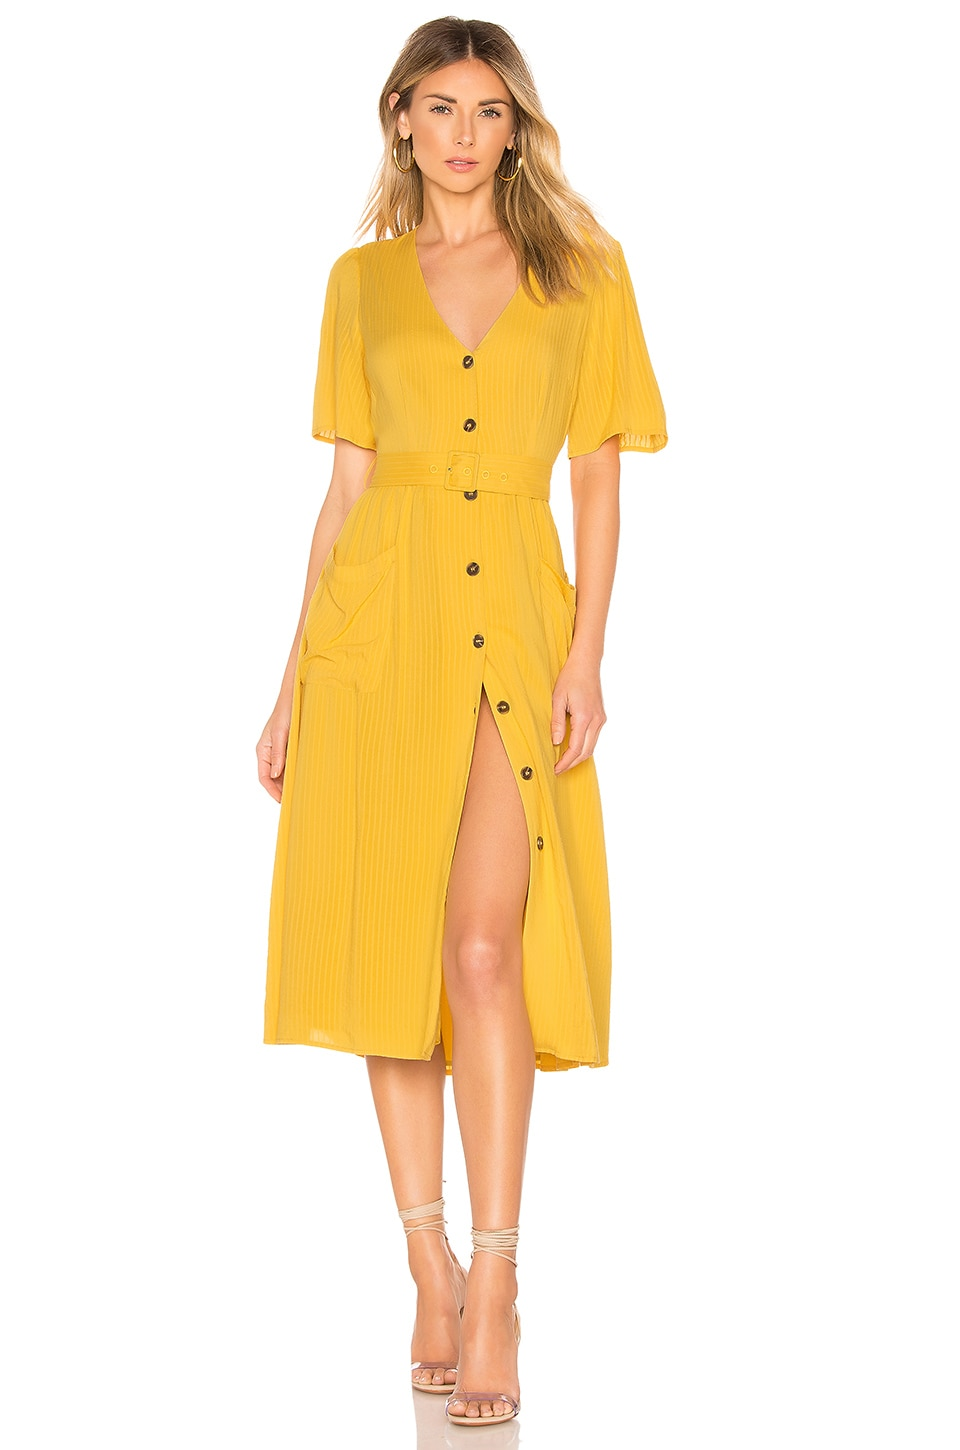 ASTR the Label Charli Dress in Sunflower Yellow